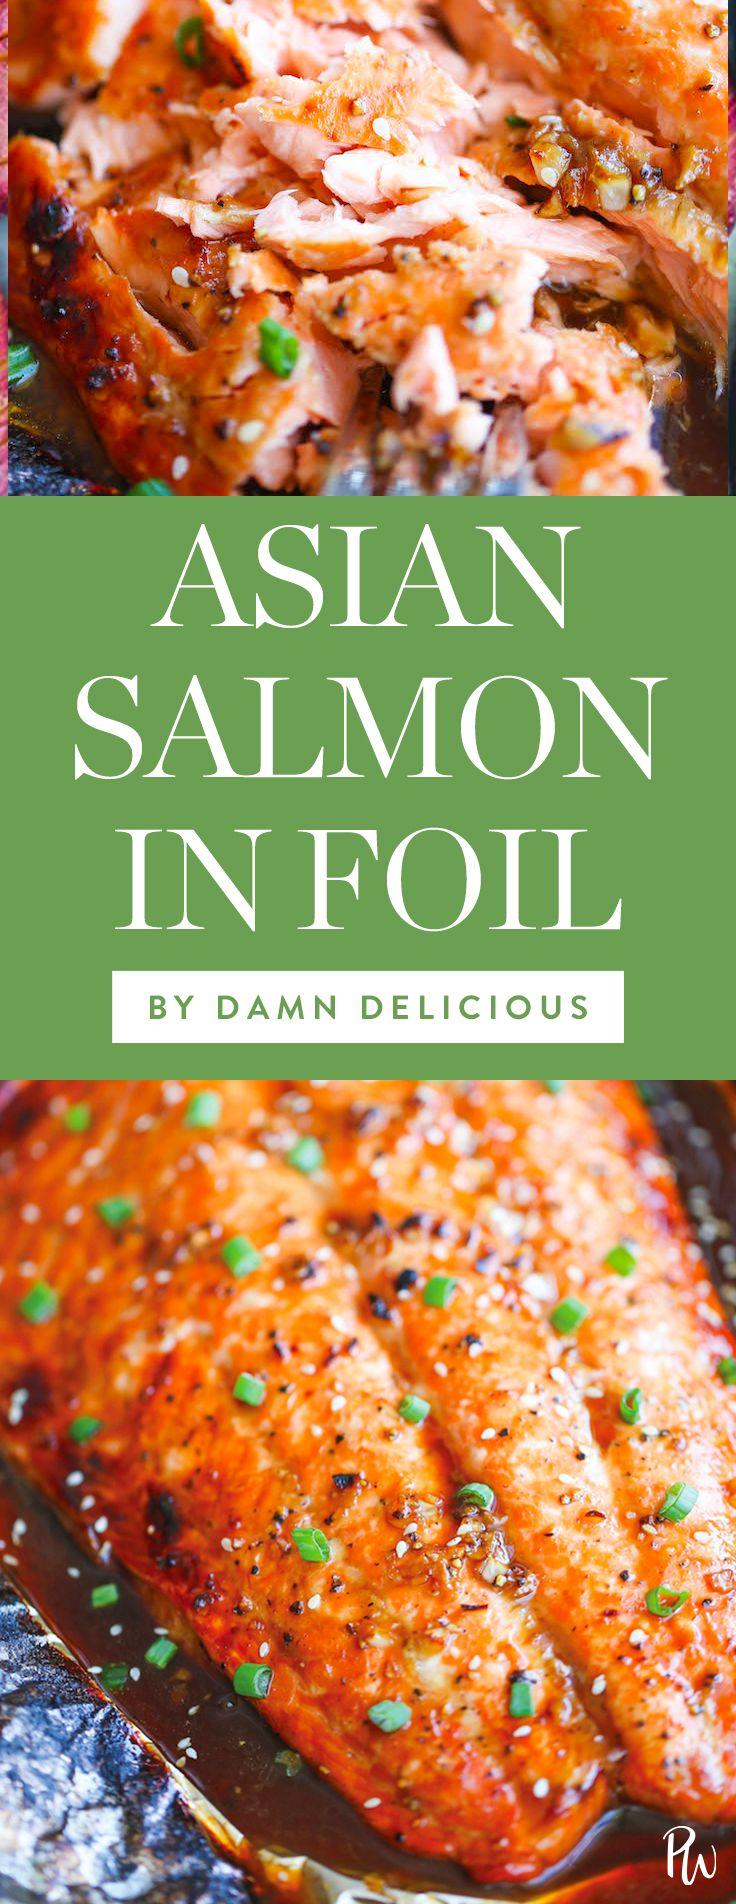 Get the recipe for this amazing asian salmon in